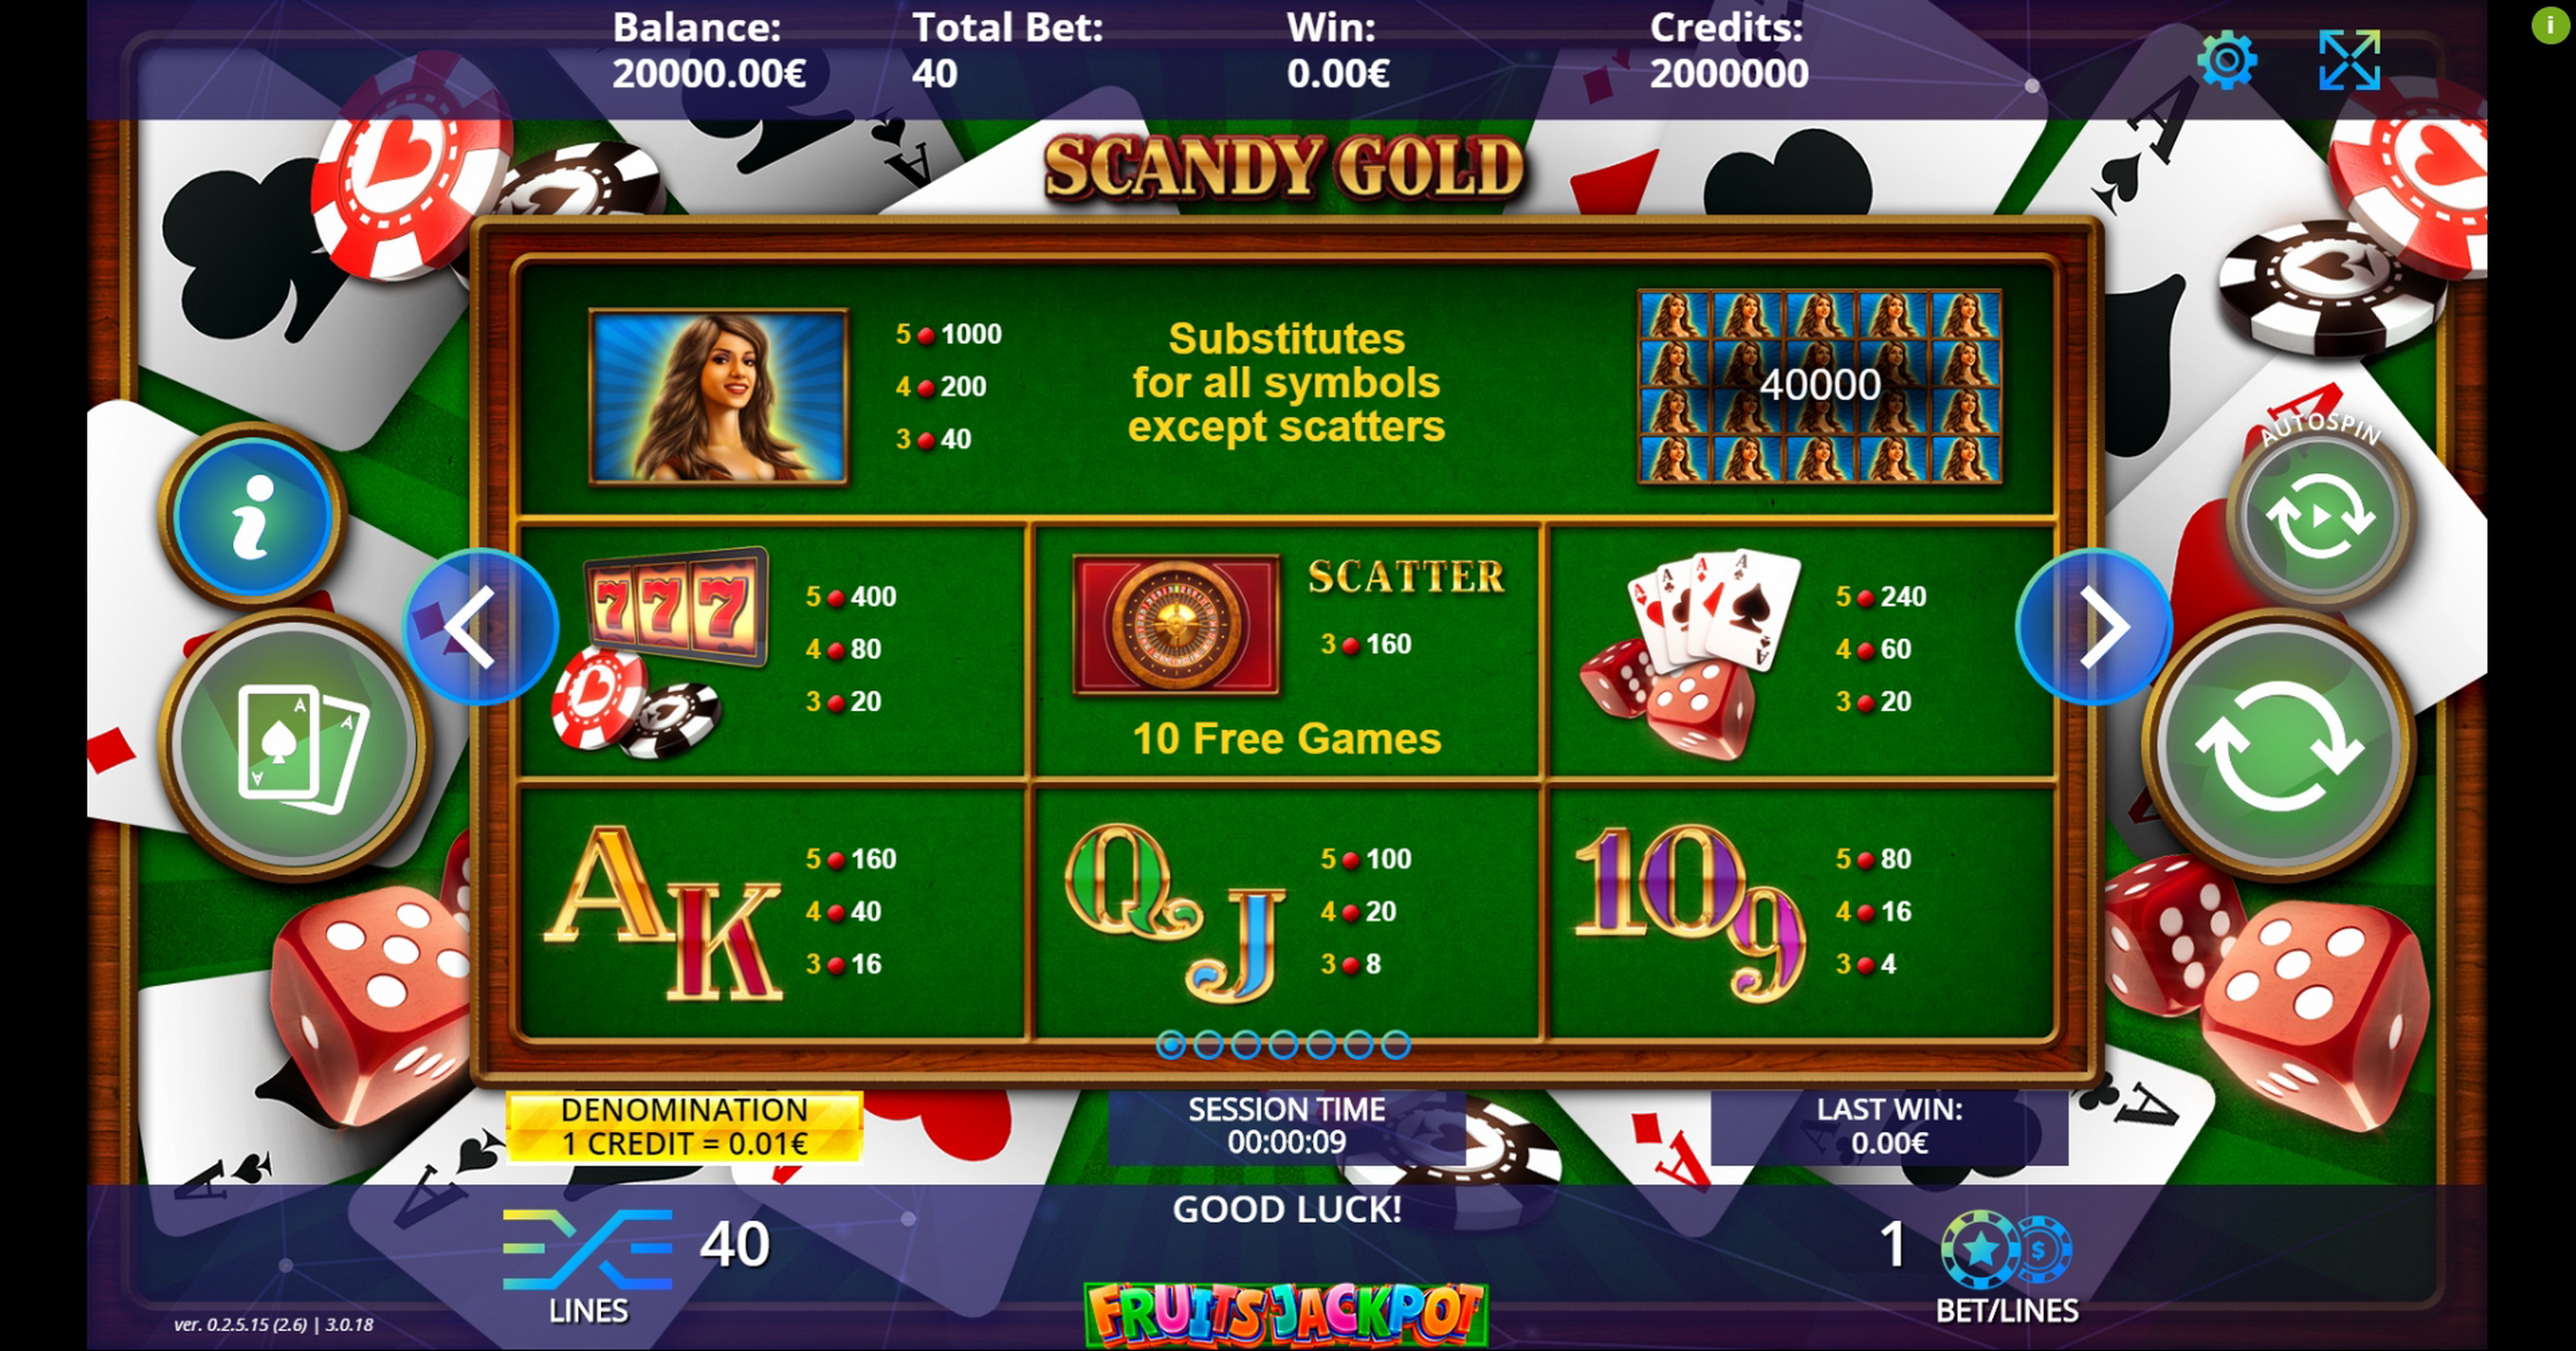 Info of Scandy Gold Fruits Jackpot Slot Game by DLV